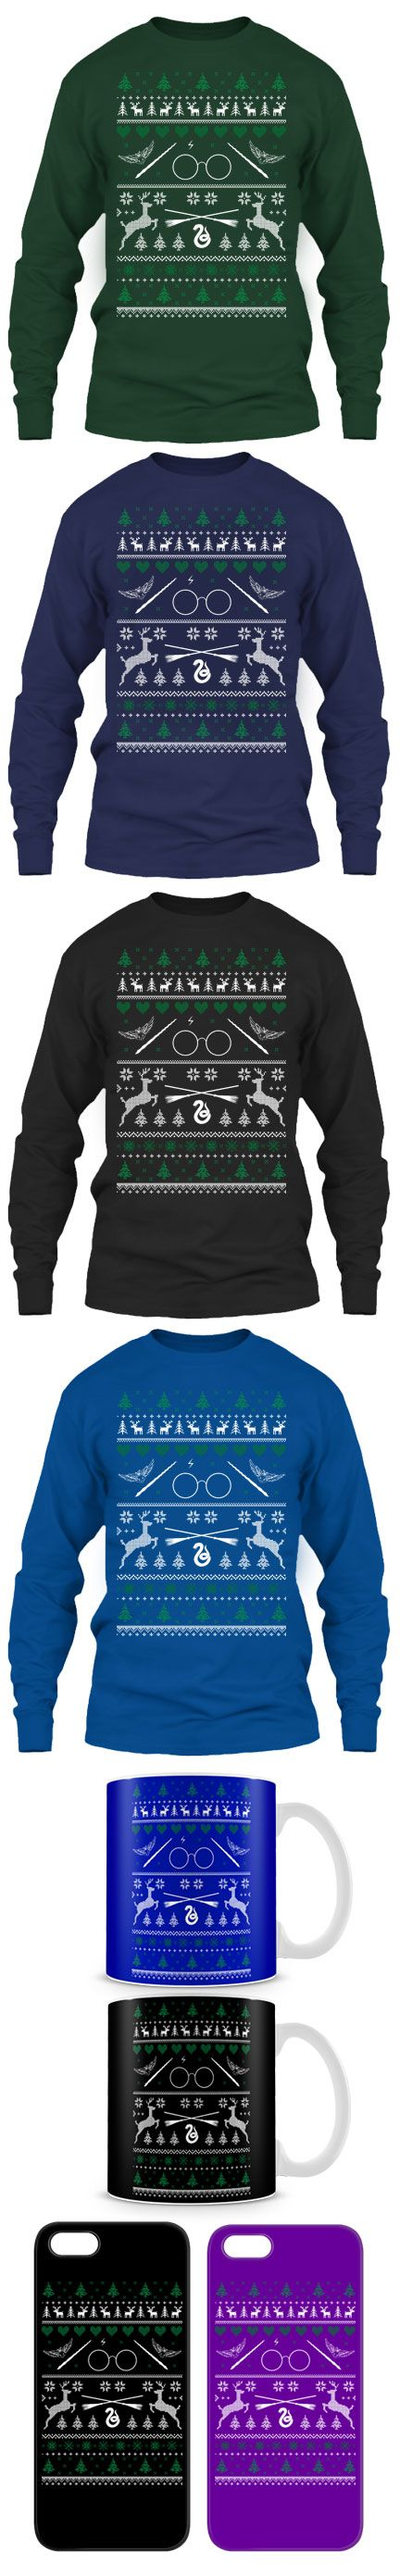 For Harry Potter Fans Ugly Christmas Sweater! Click The Image To Buy It Now or Tag Someone You Want To Buy This For.